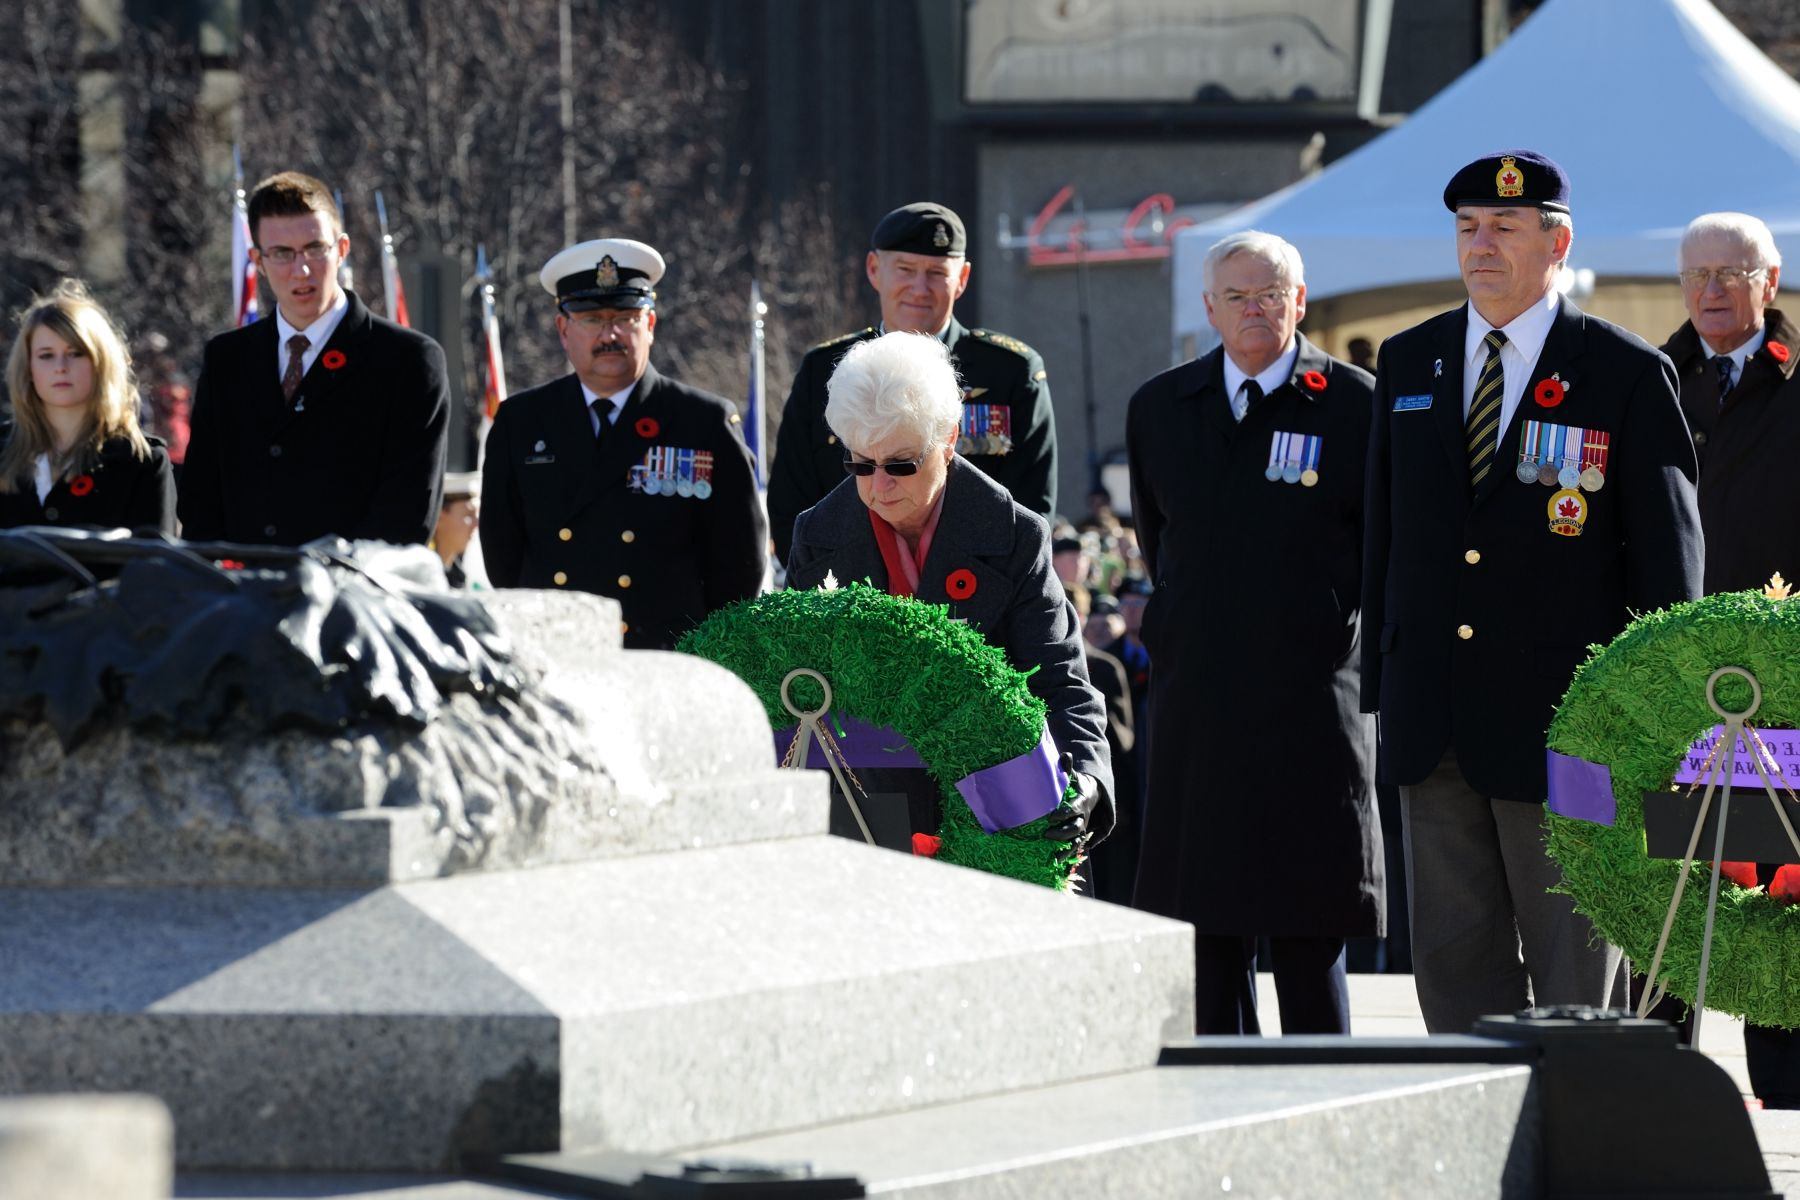 The Silver Cross Mother laid a wreath on behalf of the mothers of Canada.